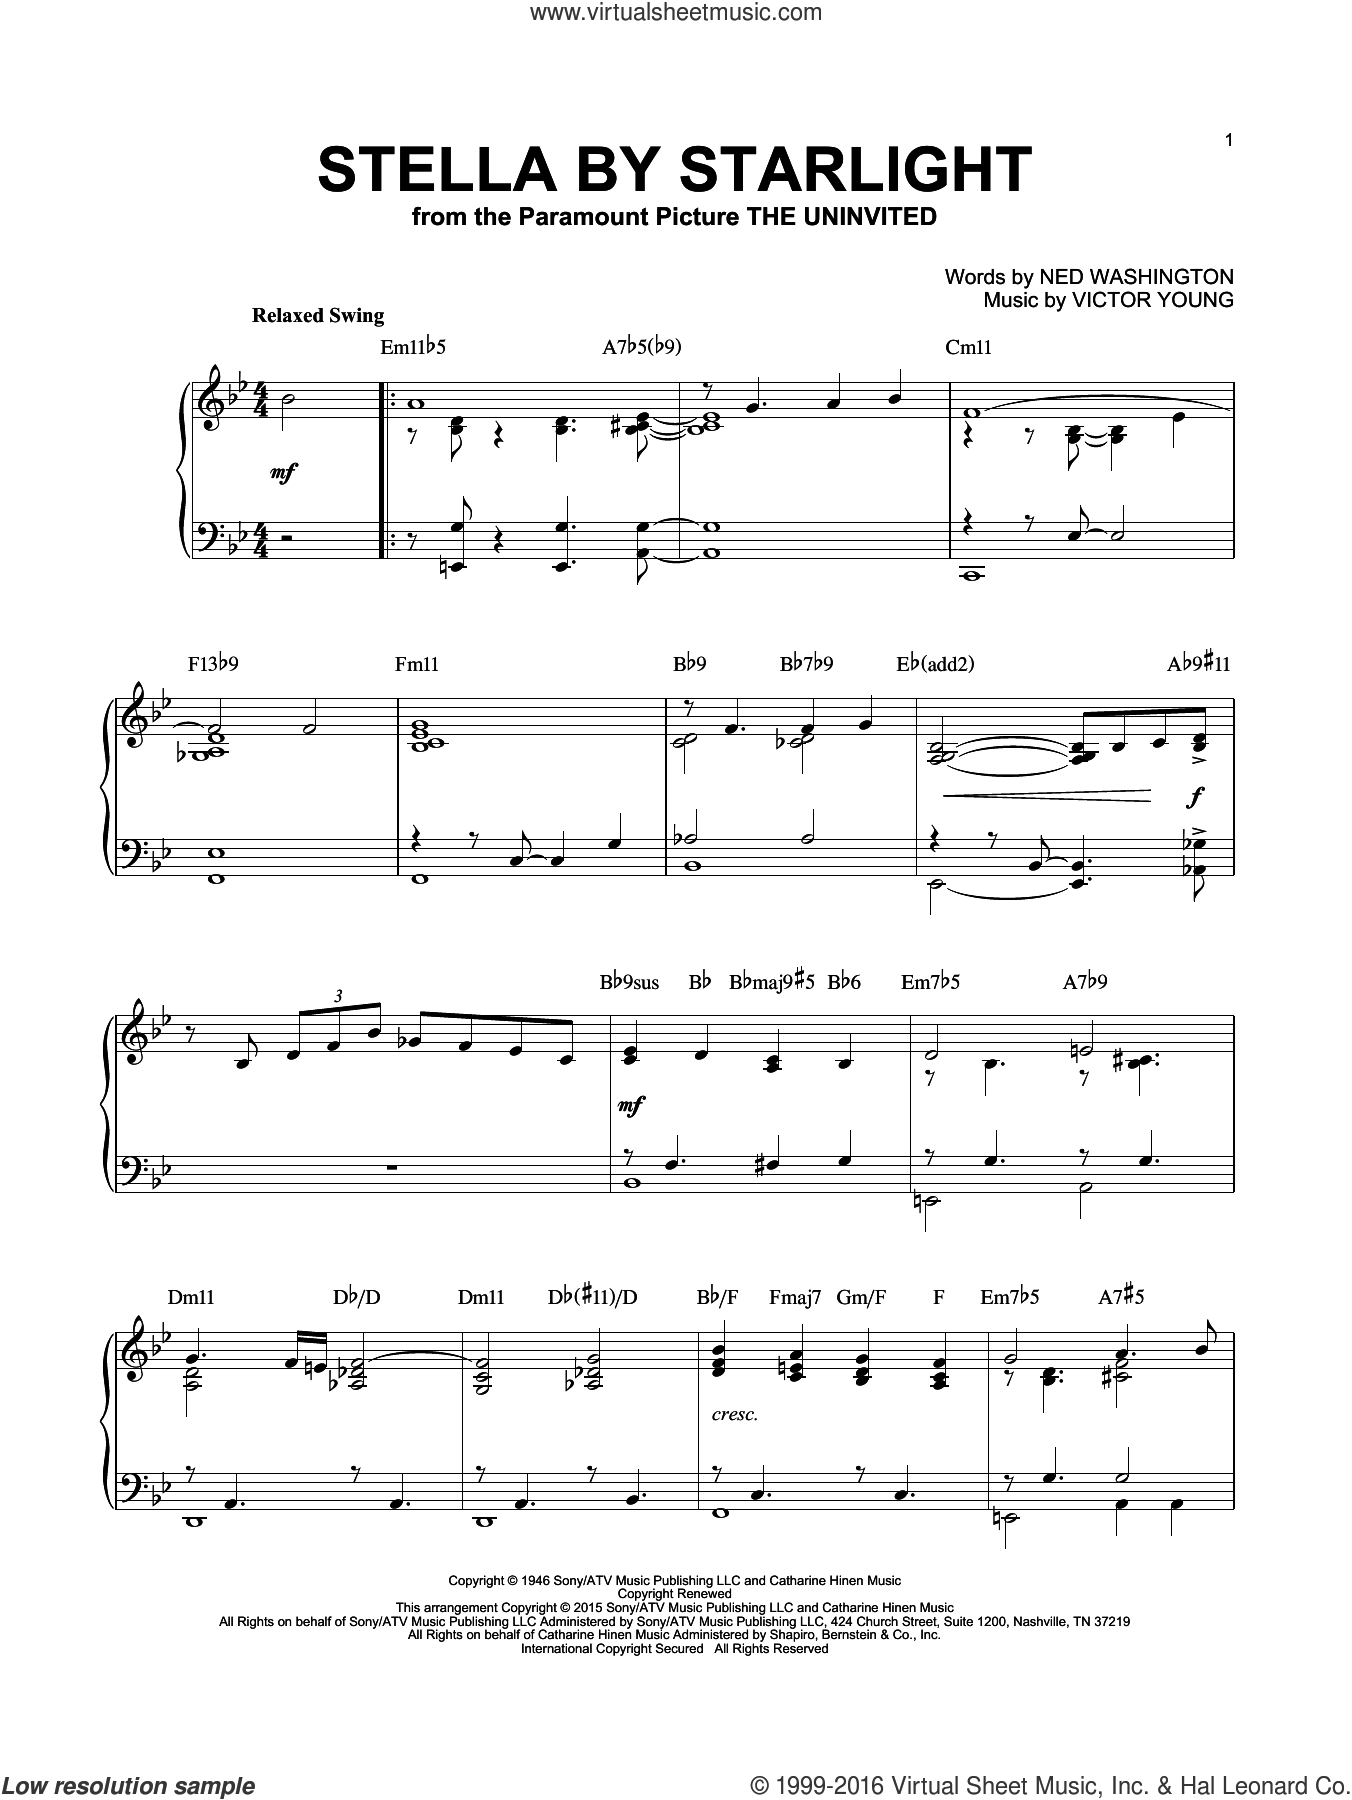 Stella By Starlight sheet music for piano solo by Ray Charles, Ned Washington and Victor Young, intermediate skill level